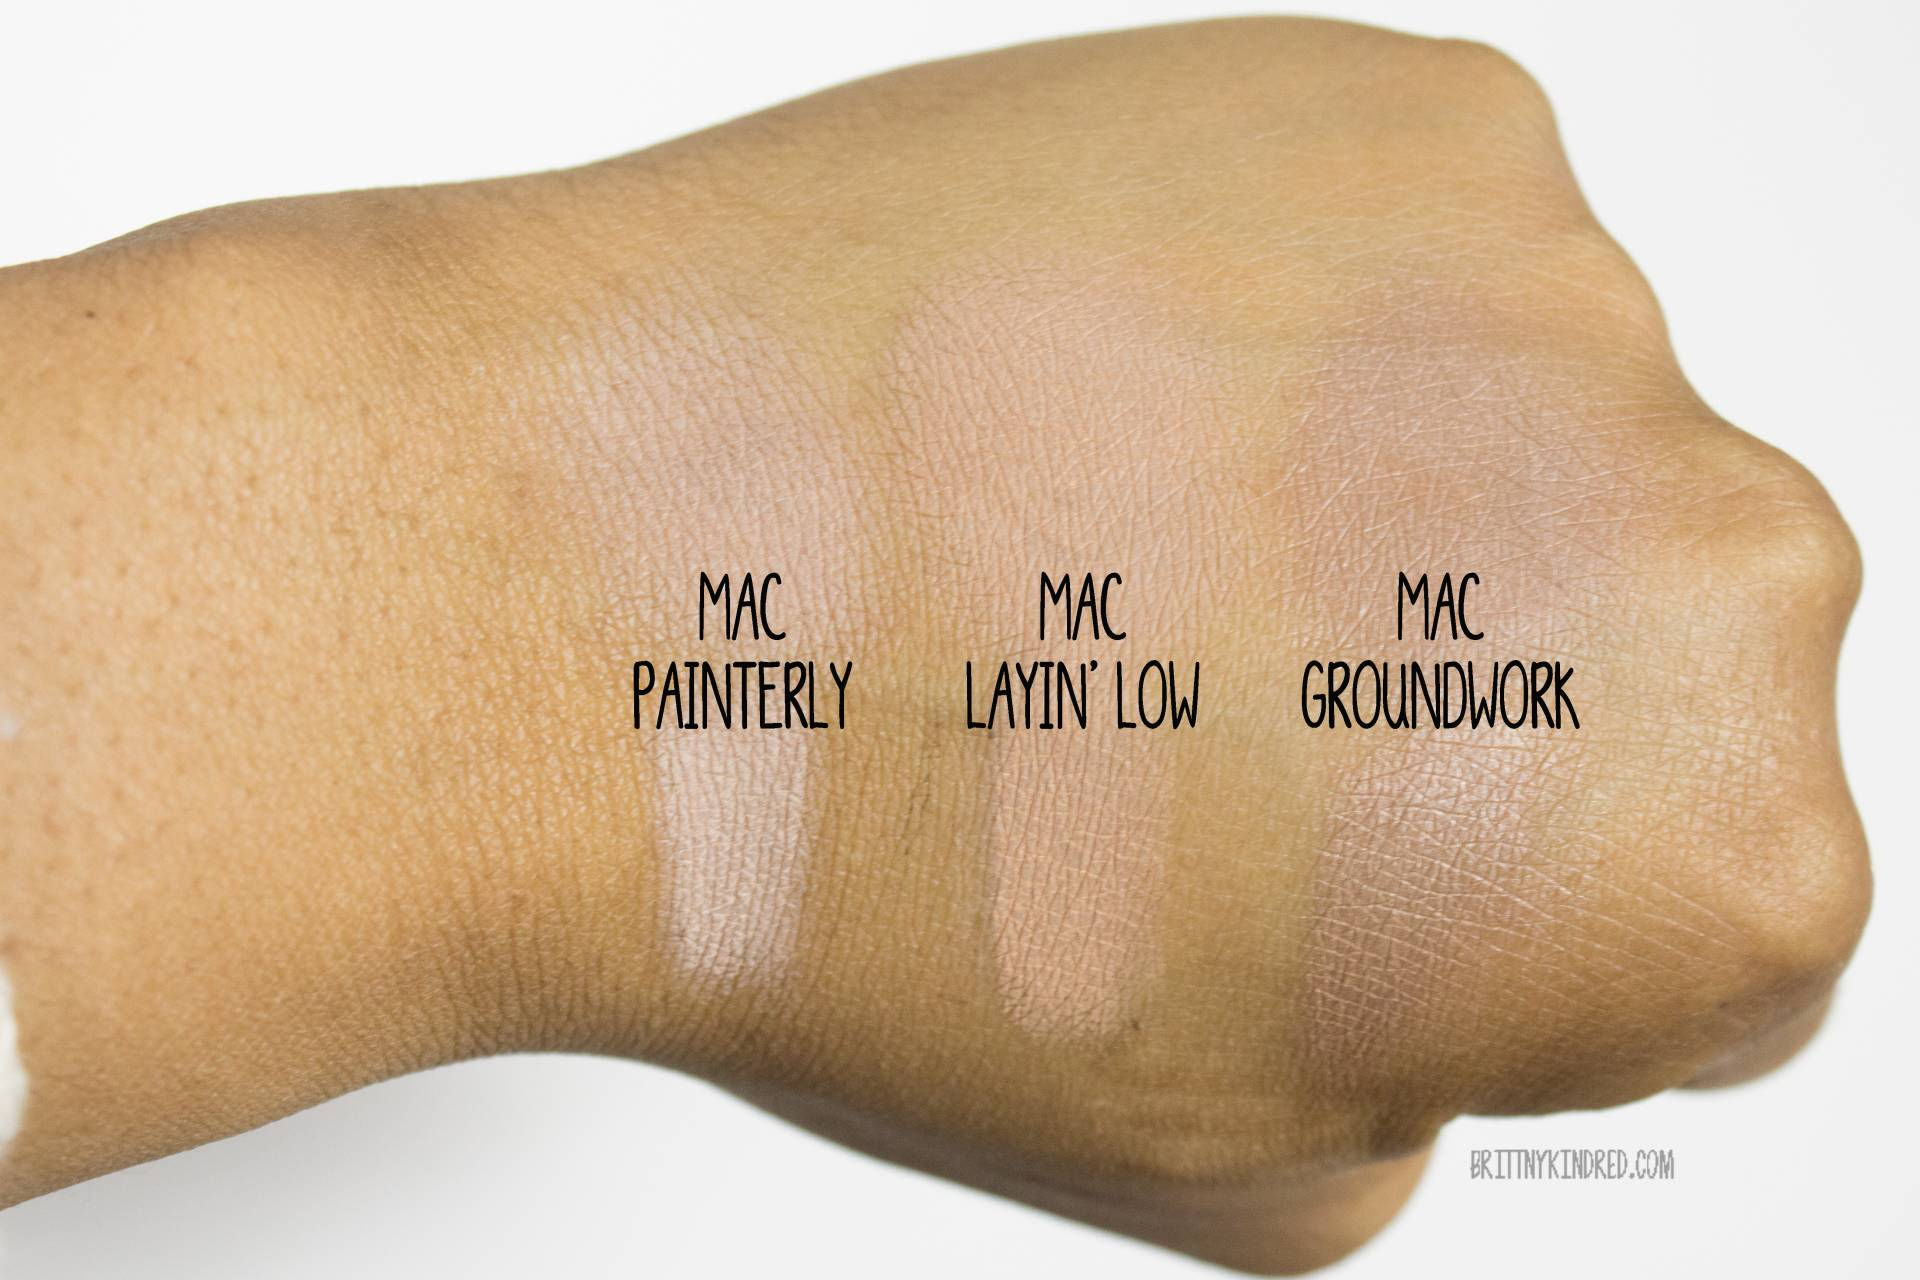 MAC Paint Pots: Painterly, Layin' Low, Groundwork